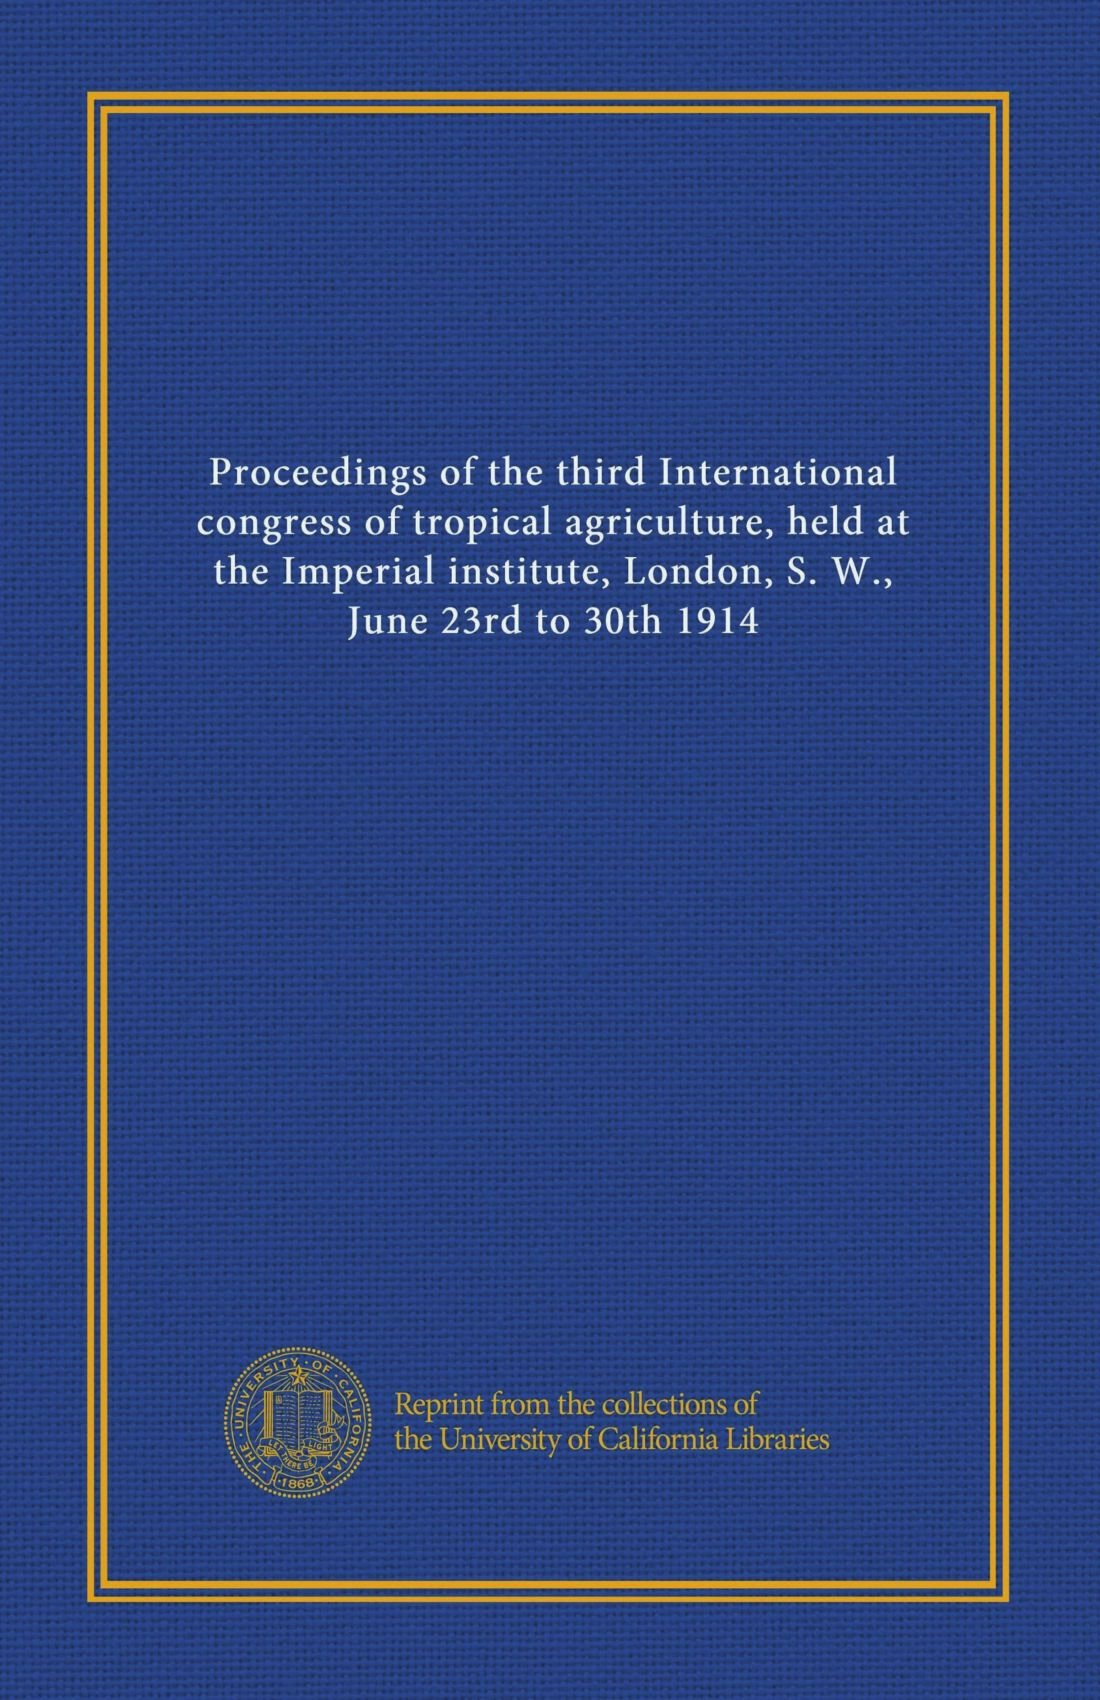 Read Online Proceedings of the third International congress of tropical agriculture, held at the Imperial institute, London, S. W., June 23rd to 30th 1914 pdf